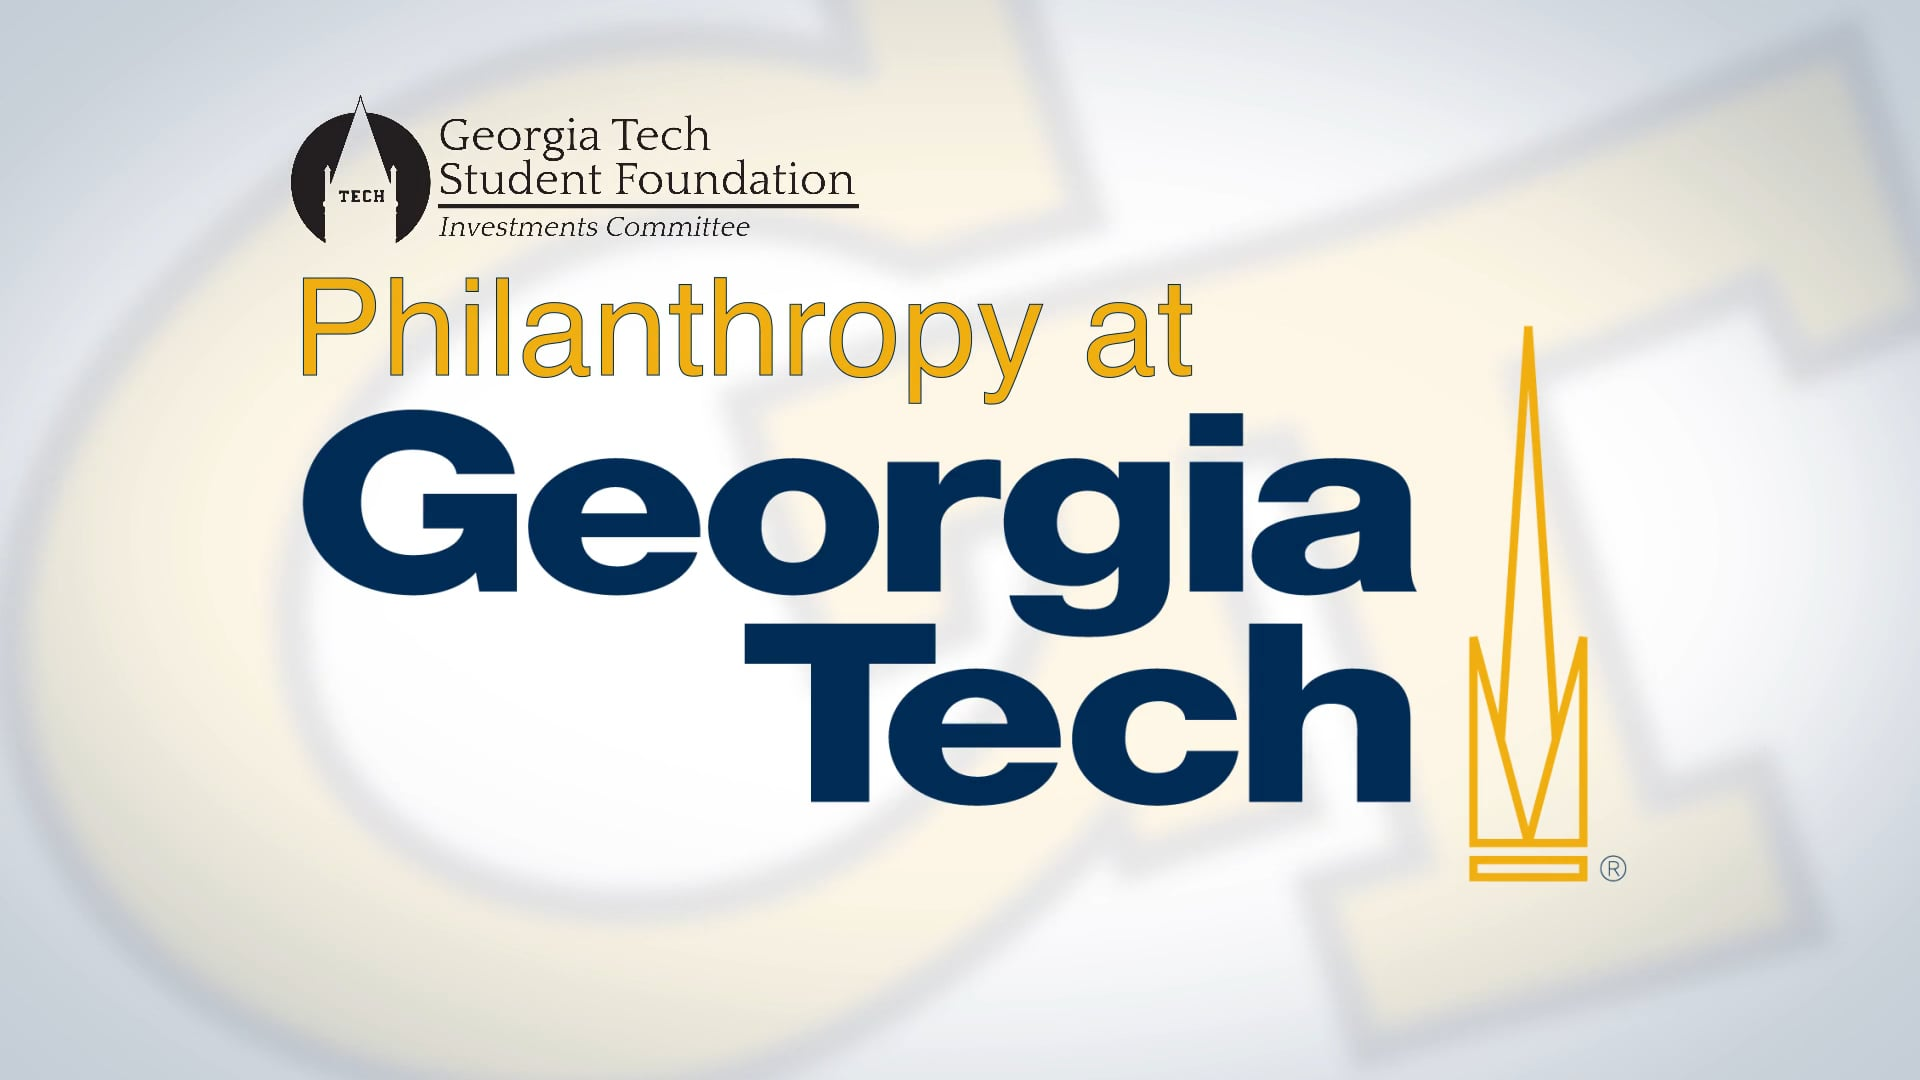 GA Tech: Philanthropy at Tech (2015)  Lensed and edited by DoubleRaven.